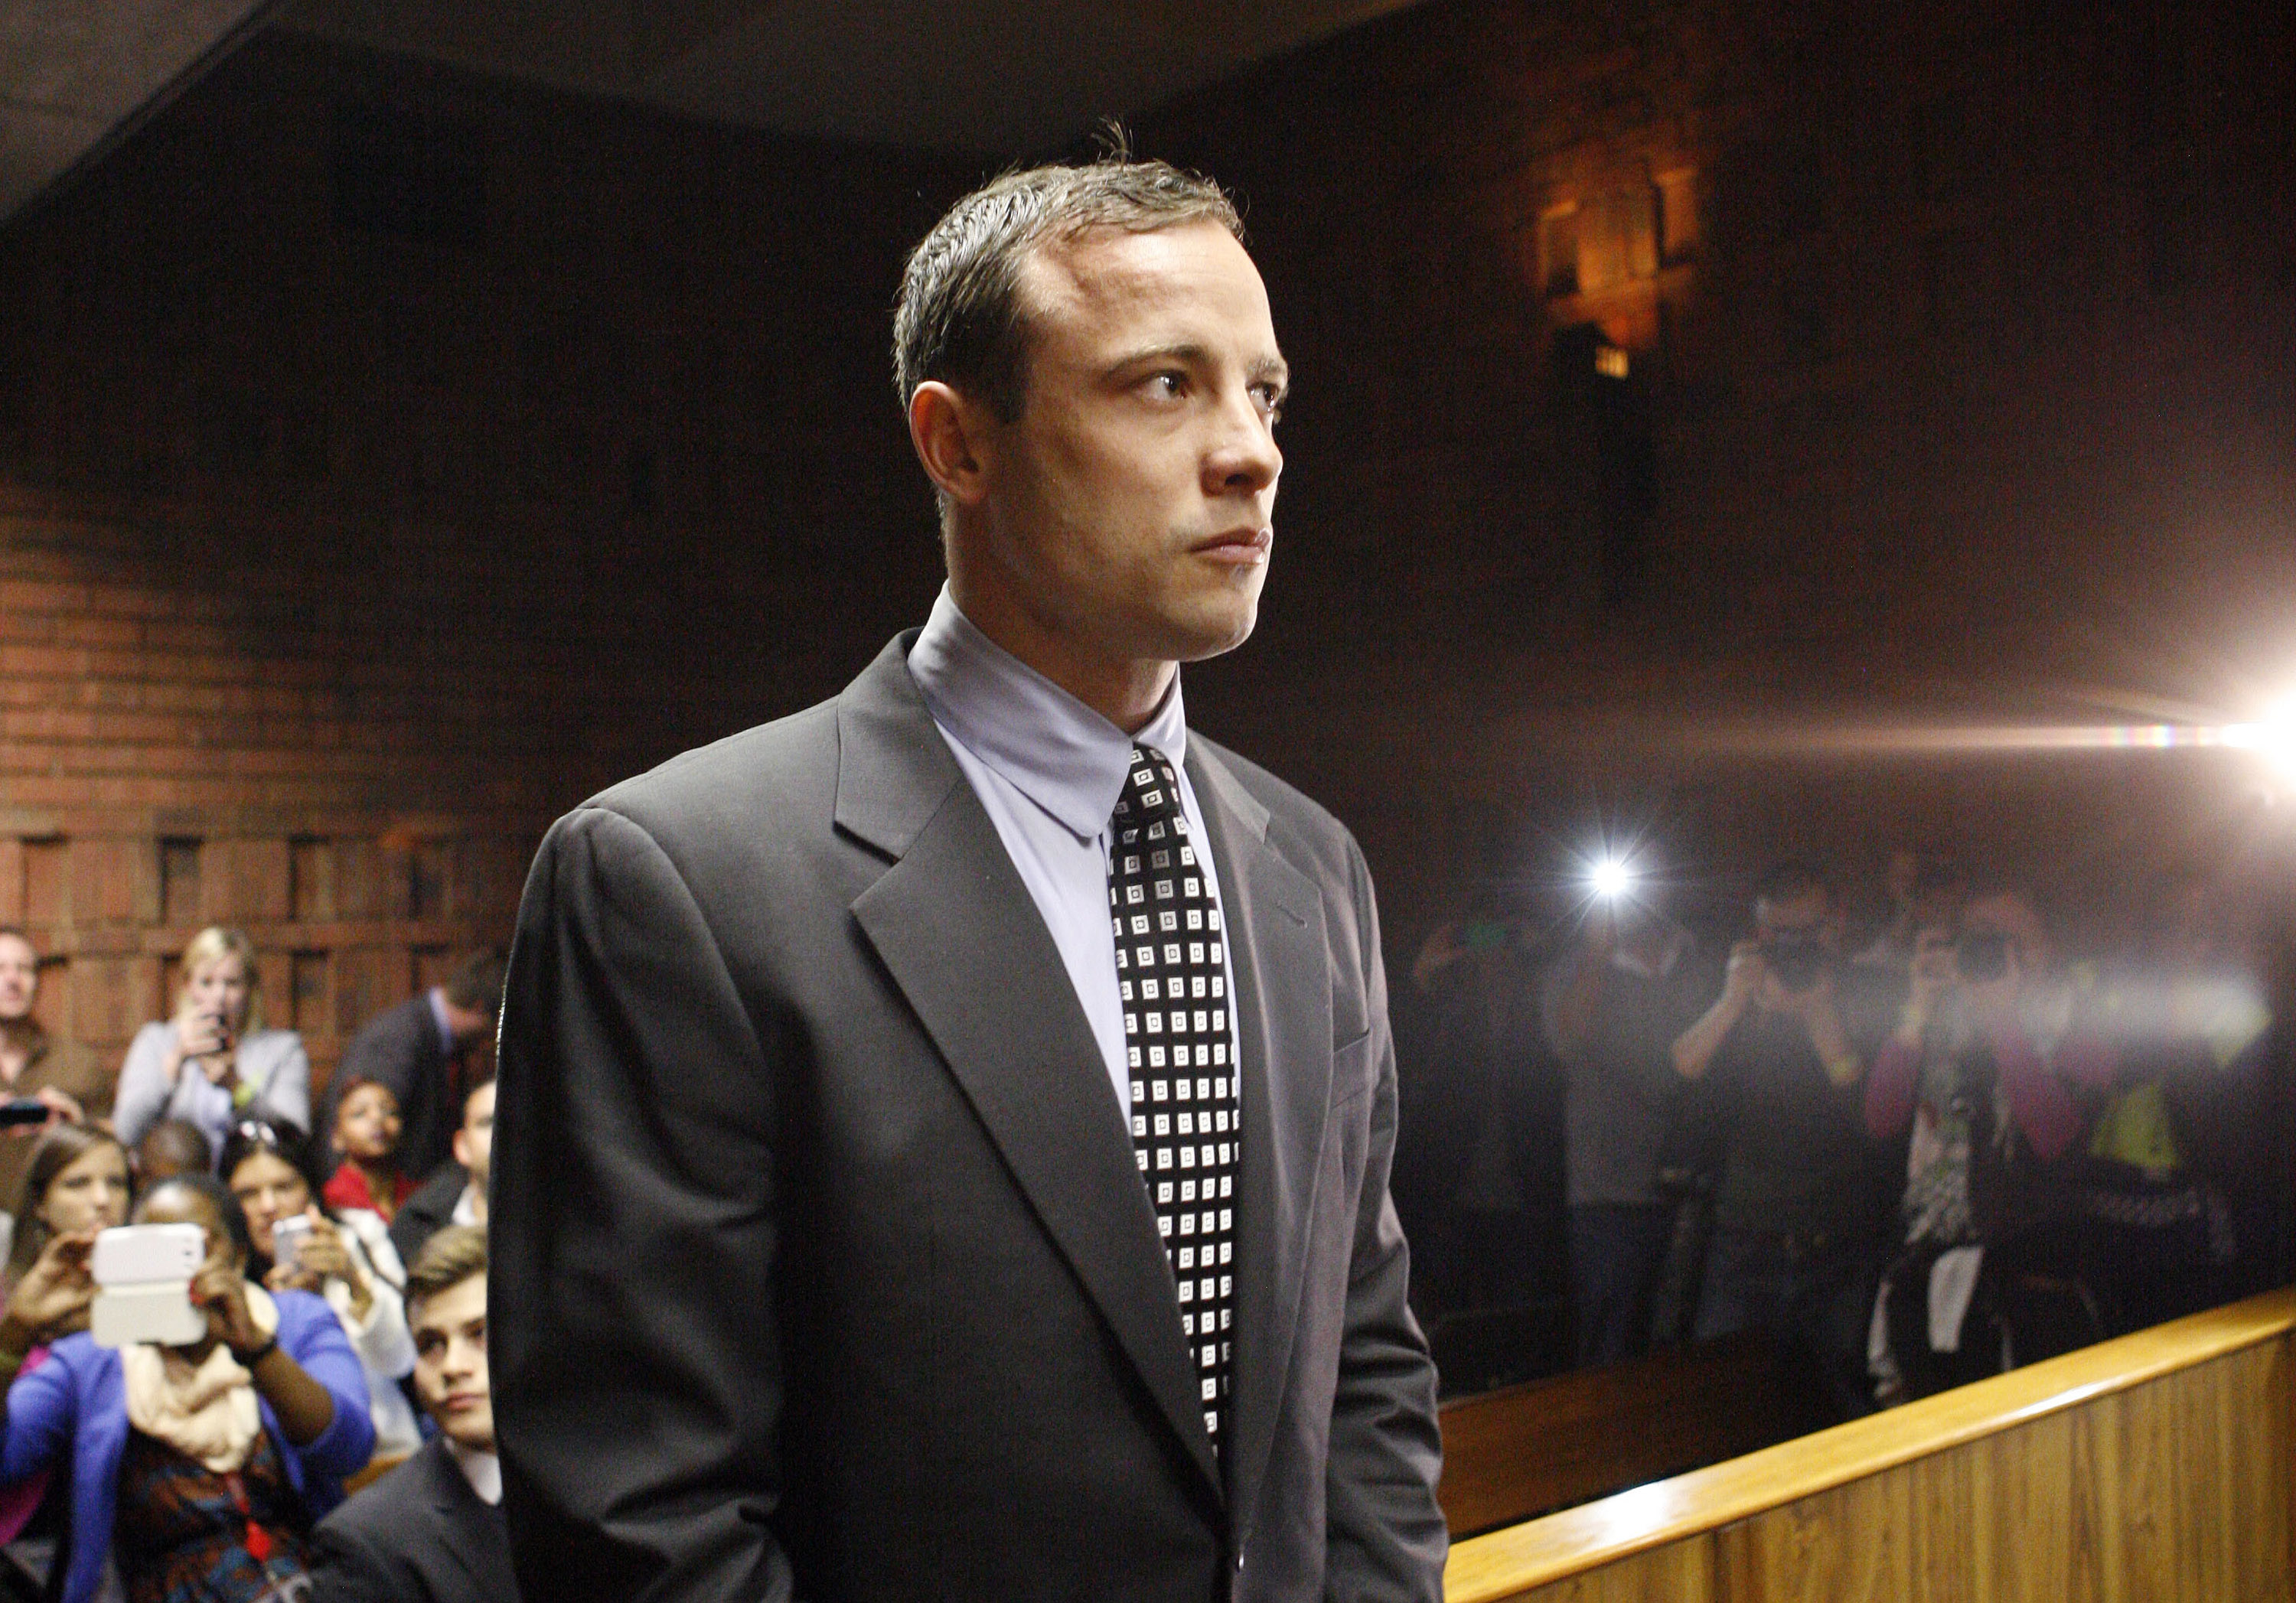 Double-amputee Olympian, Oscar Pistorius, looks on as he appears in the magistrates court in Pretoria, South Africa, Tuesday, June 4, 2013.